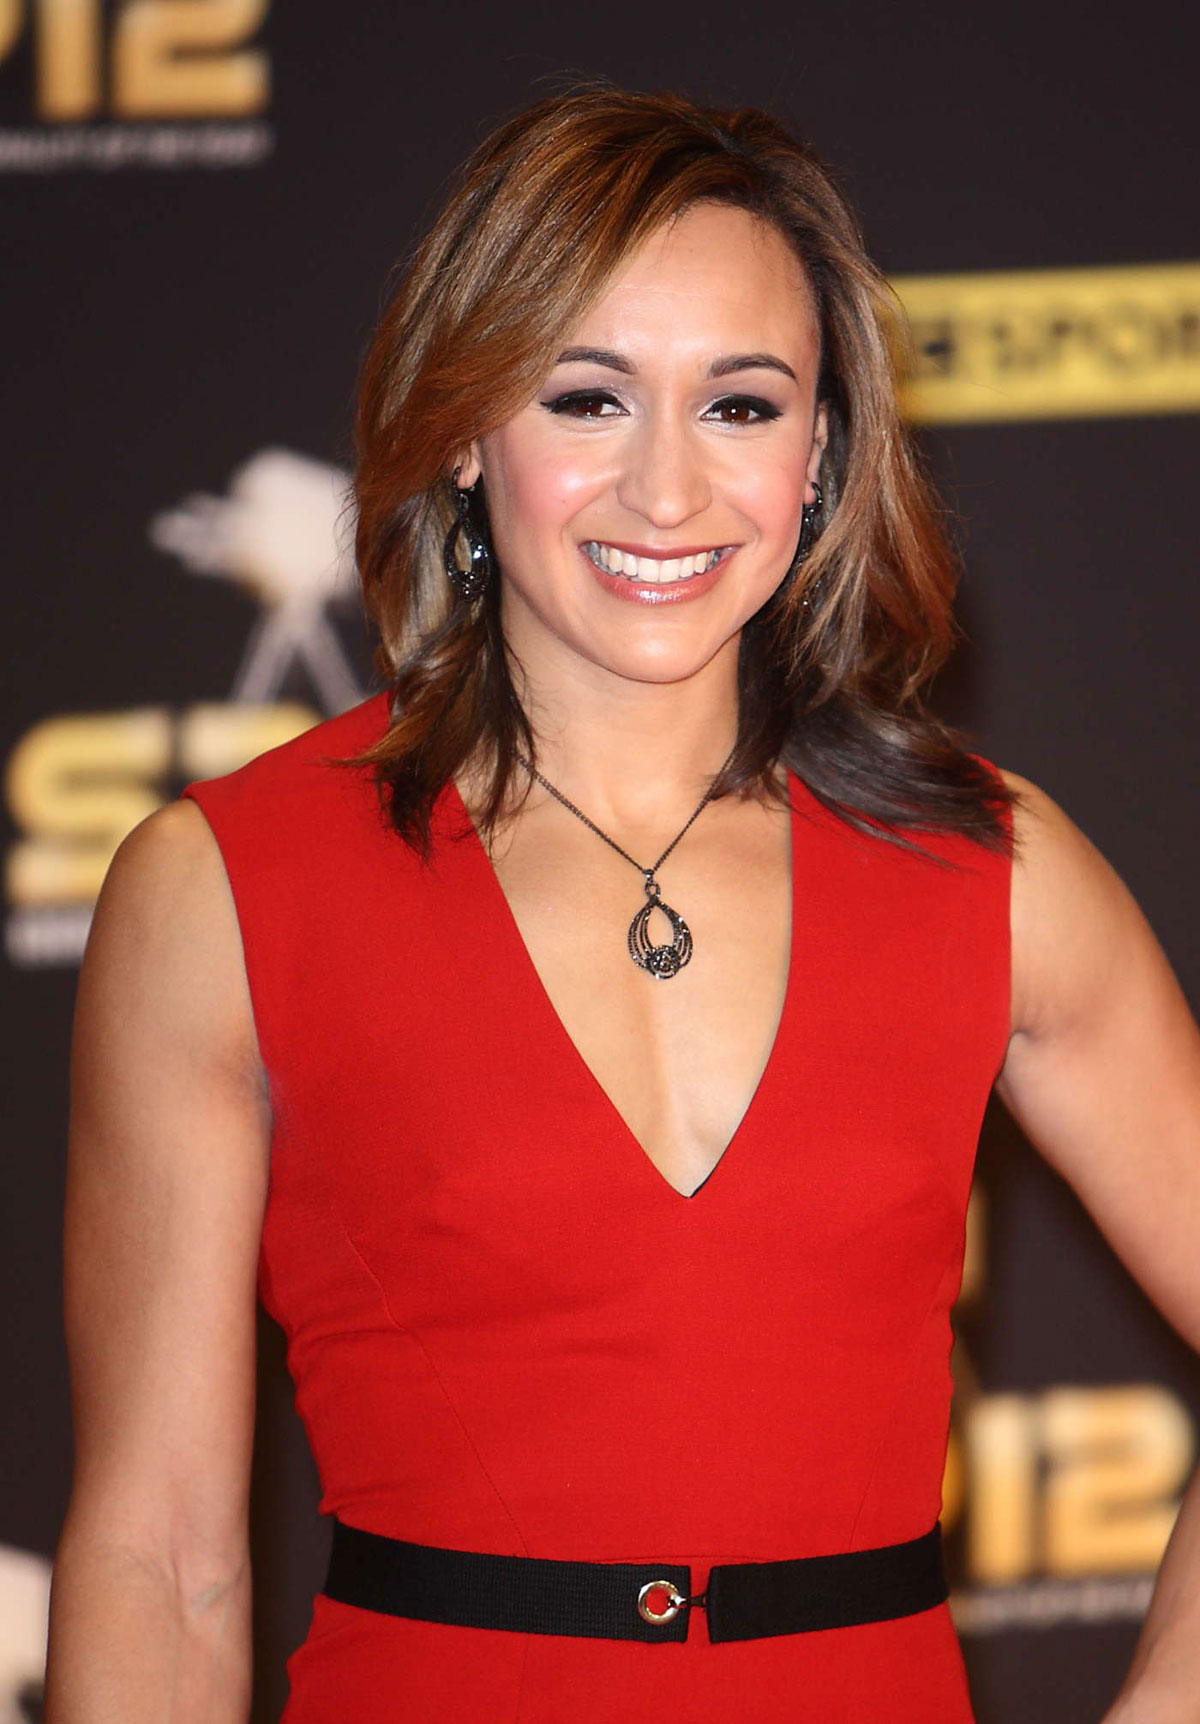 JESSICA ENNIS at 2012 BBC Sports Personality of the Year ...